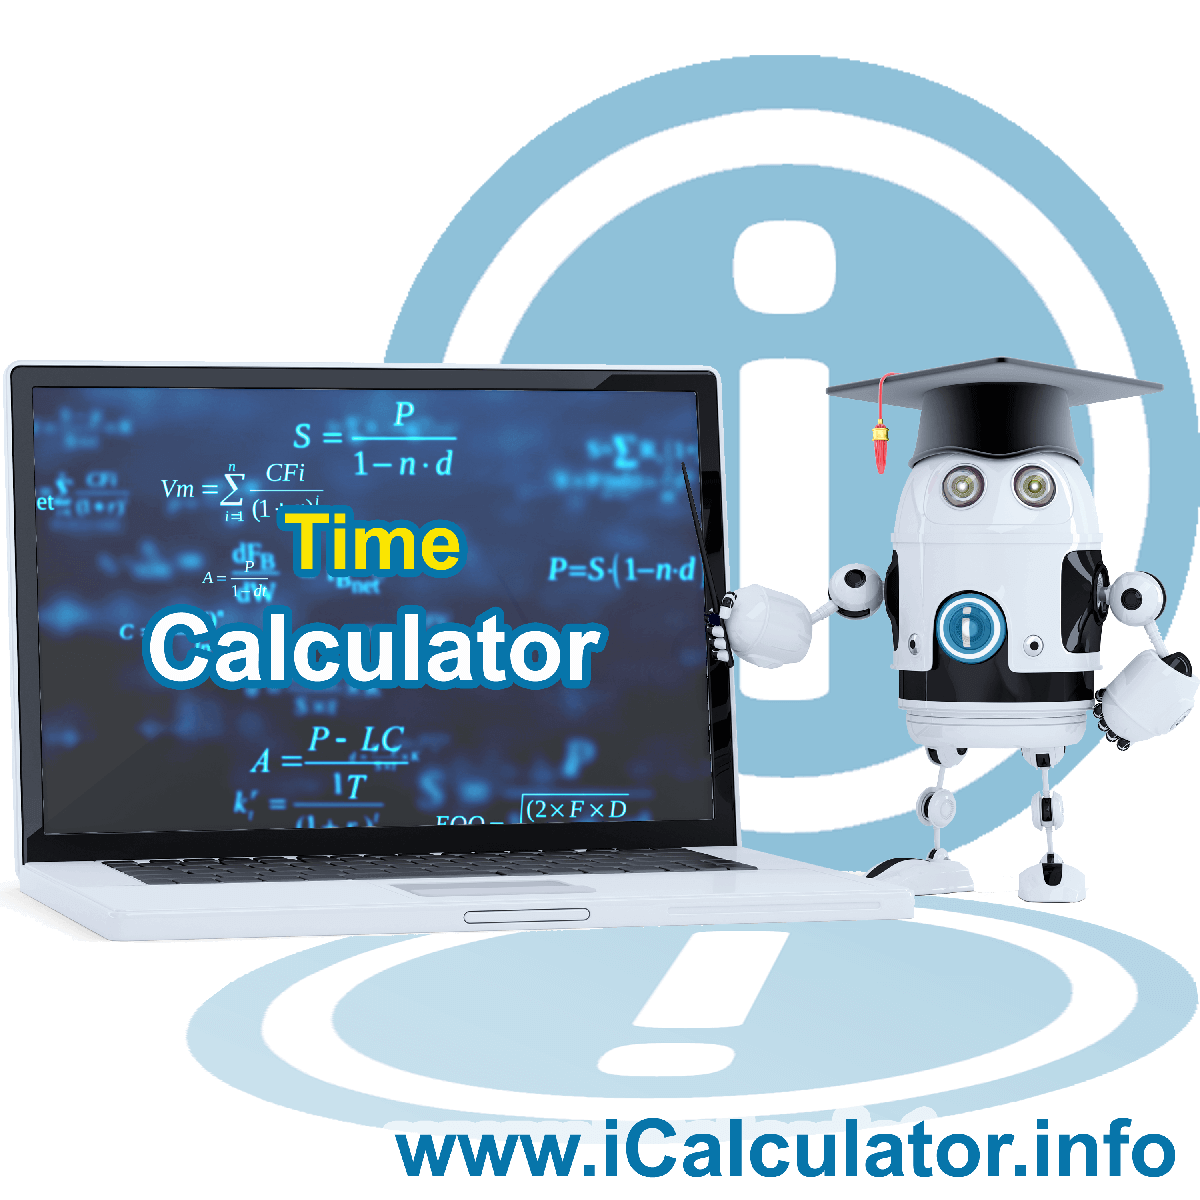 Advanced Time Calculator. This image shows the time robot calculator time using time formula for adding, subtracting, multiplying and dividing time to calculate time as a mathematical function